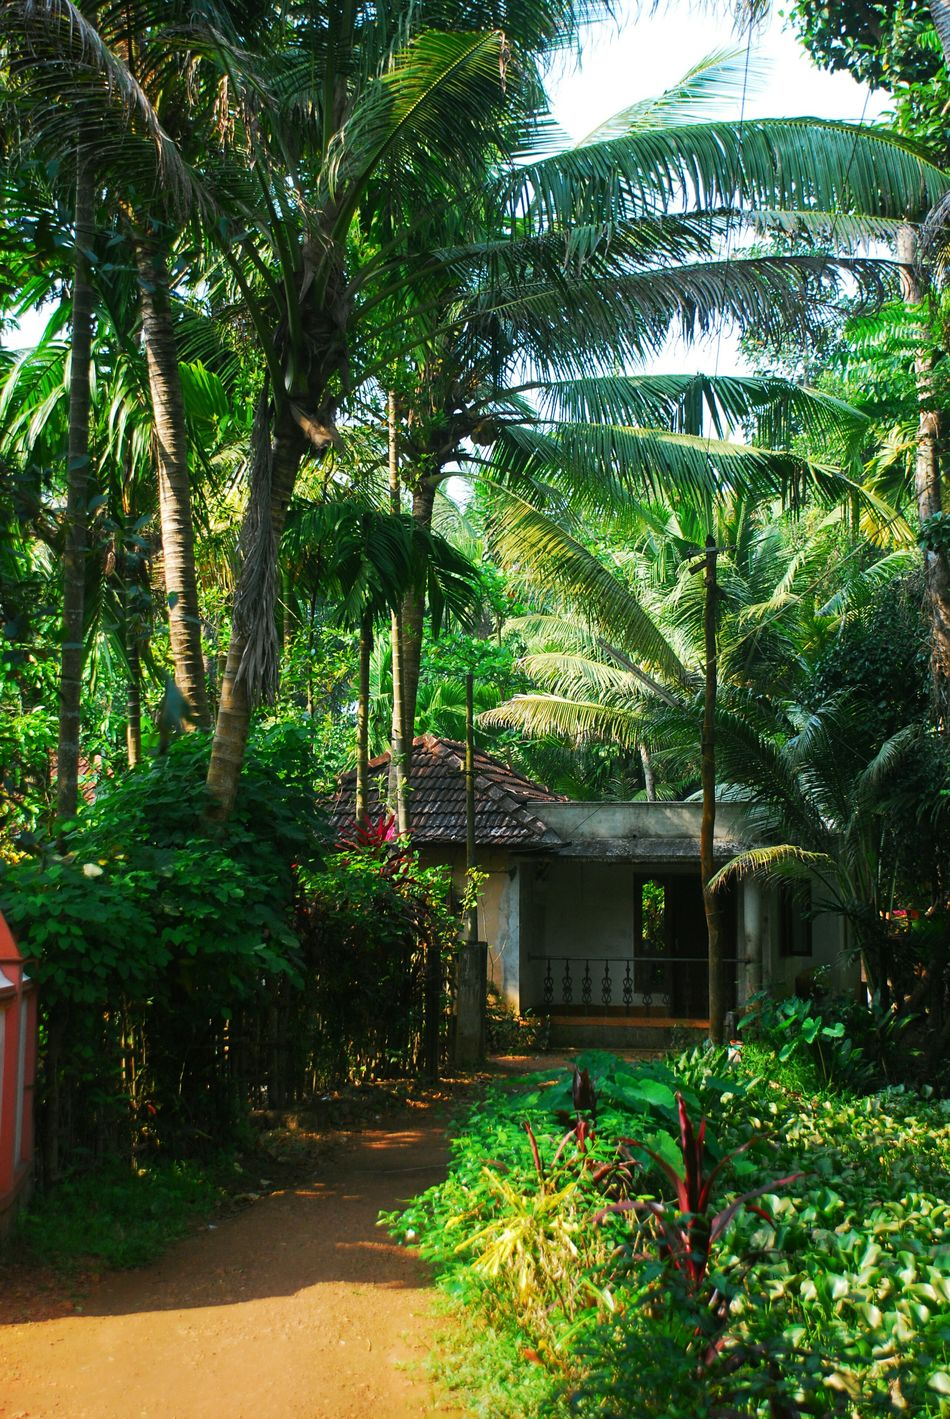 Hut in the jungle Beauty In Nature Day Diminishing Perspective Empty Footpath Grass Green Green Color Growing Growth Idyllic Kerala Lush Foliage Narrow Nature No People Outdoors Plant Scenics The Way Forward Tranquil Scene Tranquility Tree Tree Trunk Walkway